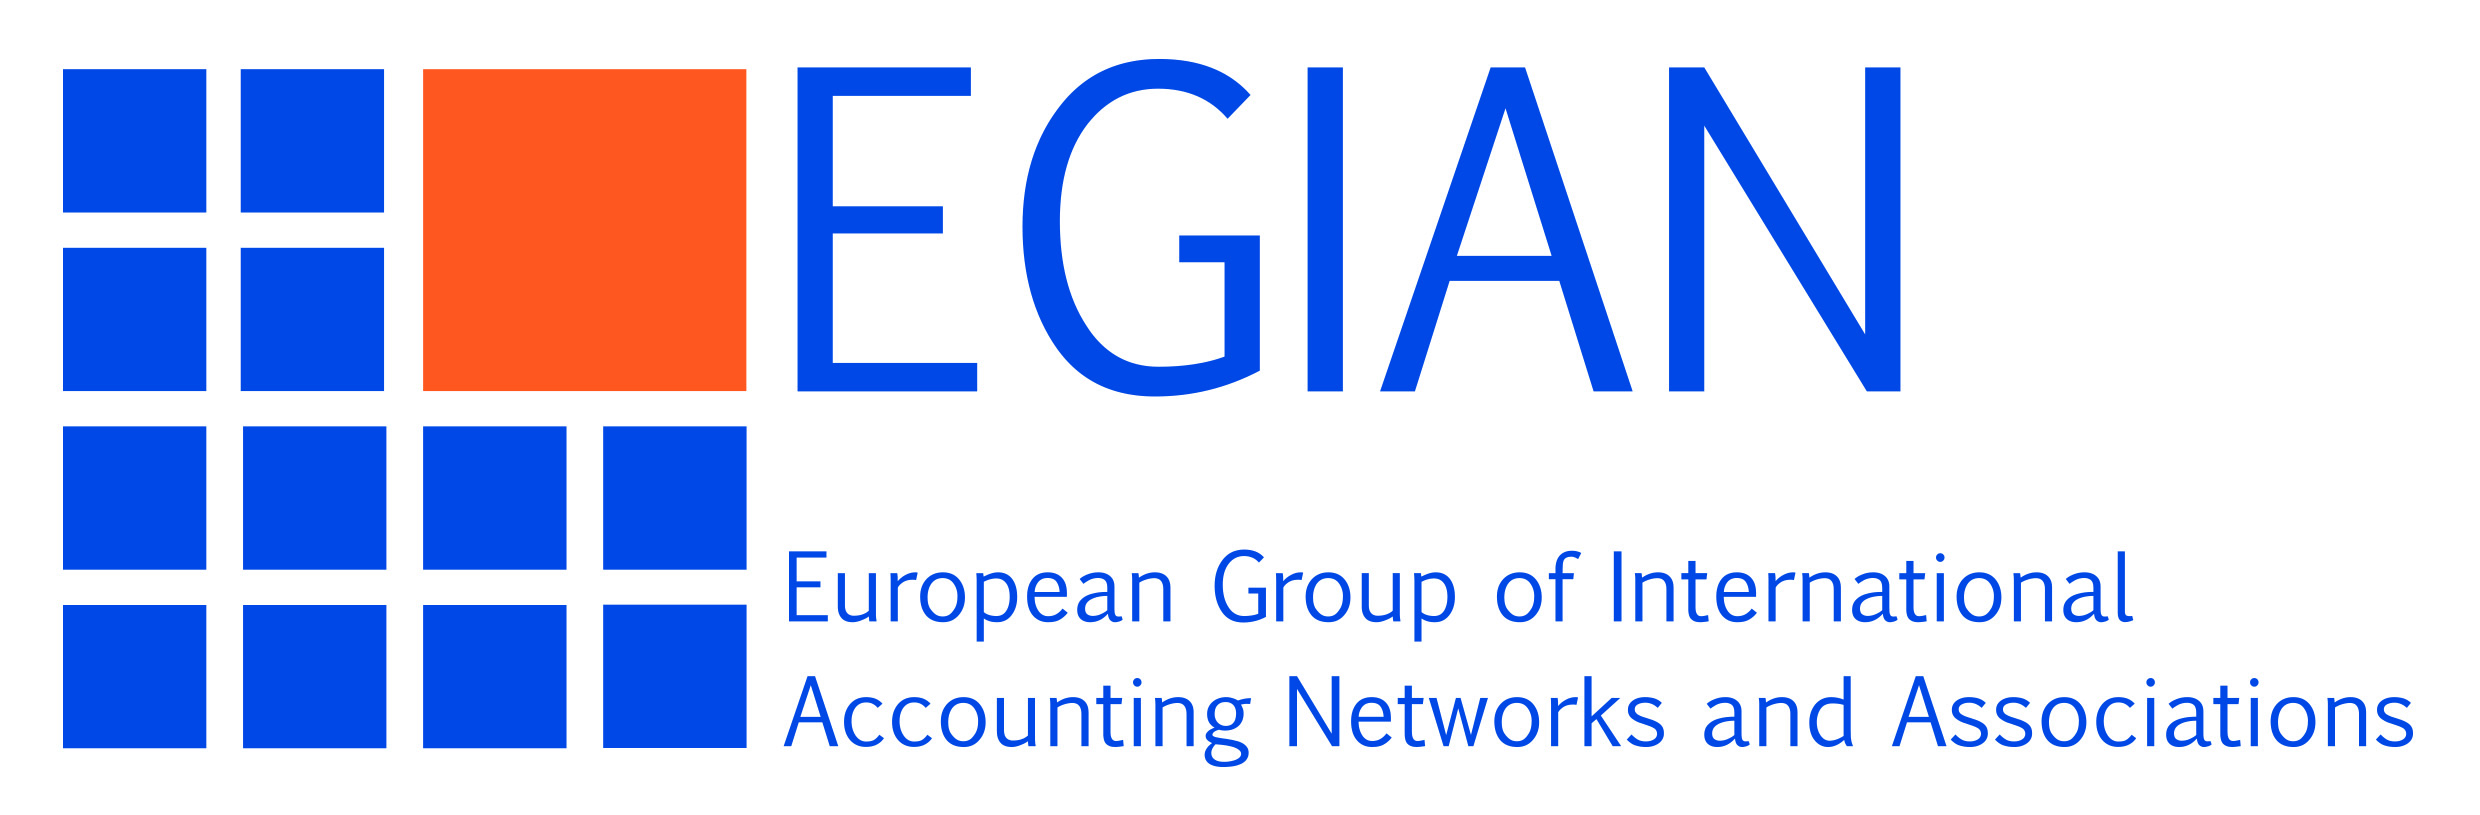 logo for European Group of International Accounting Networks and Associations